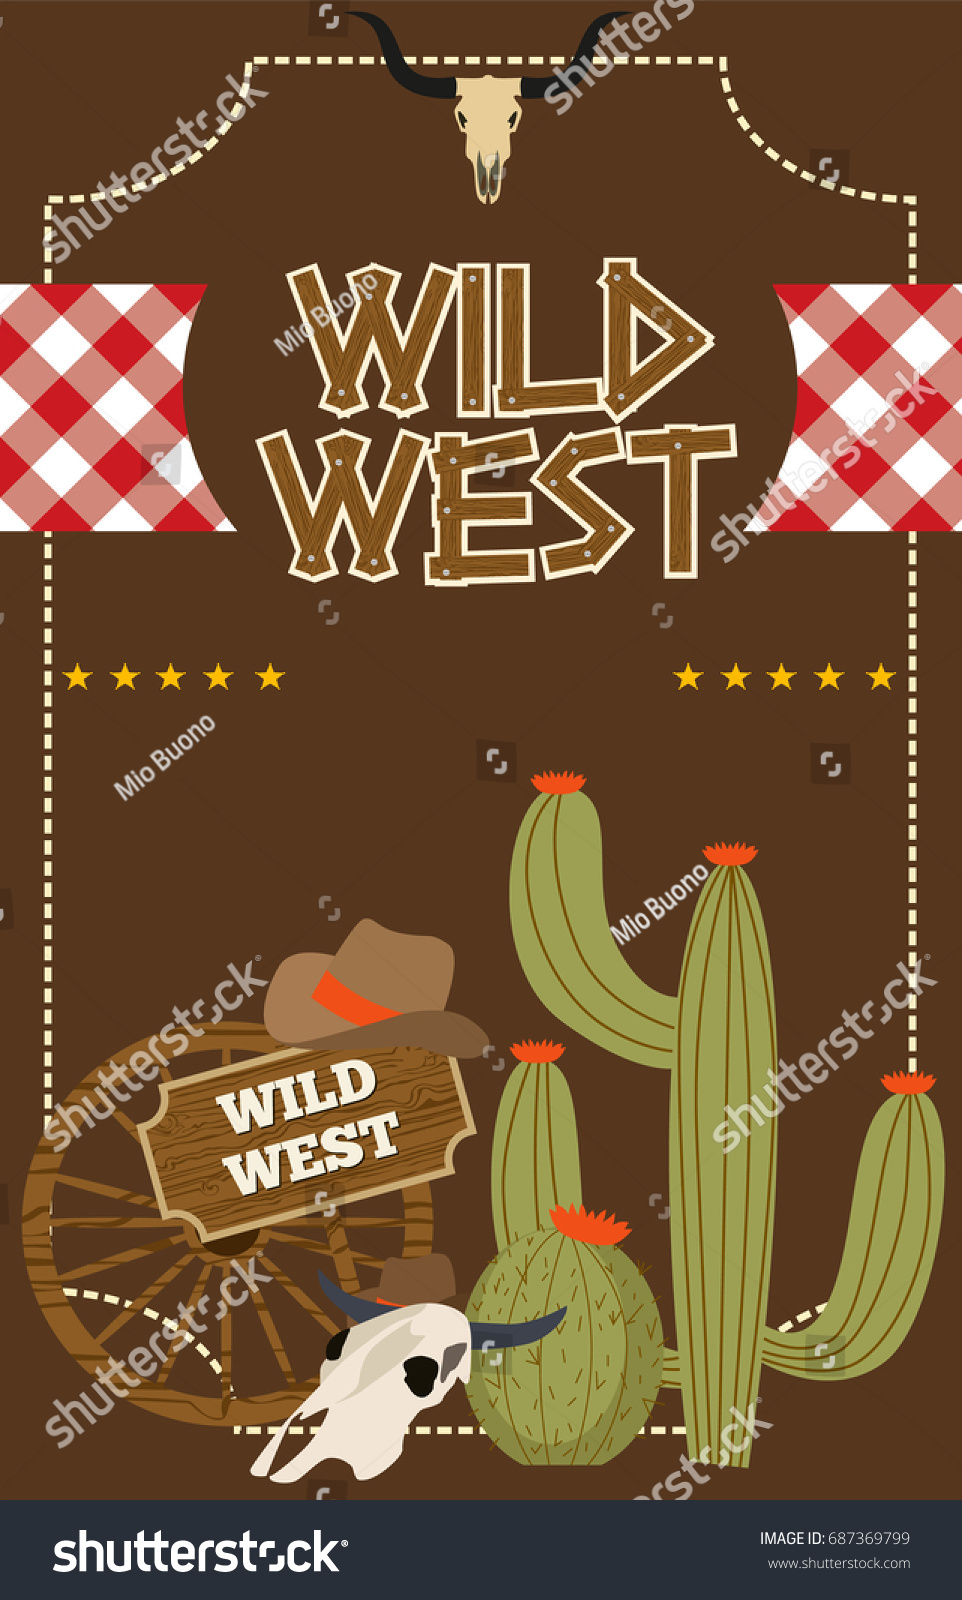 Wild West Poster Party Invitation Editable Stock Vector 687369799 ...